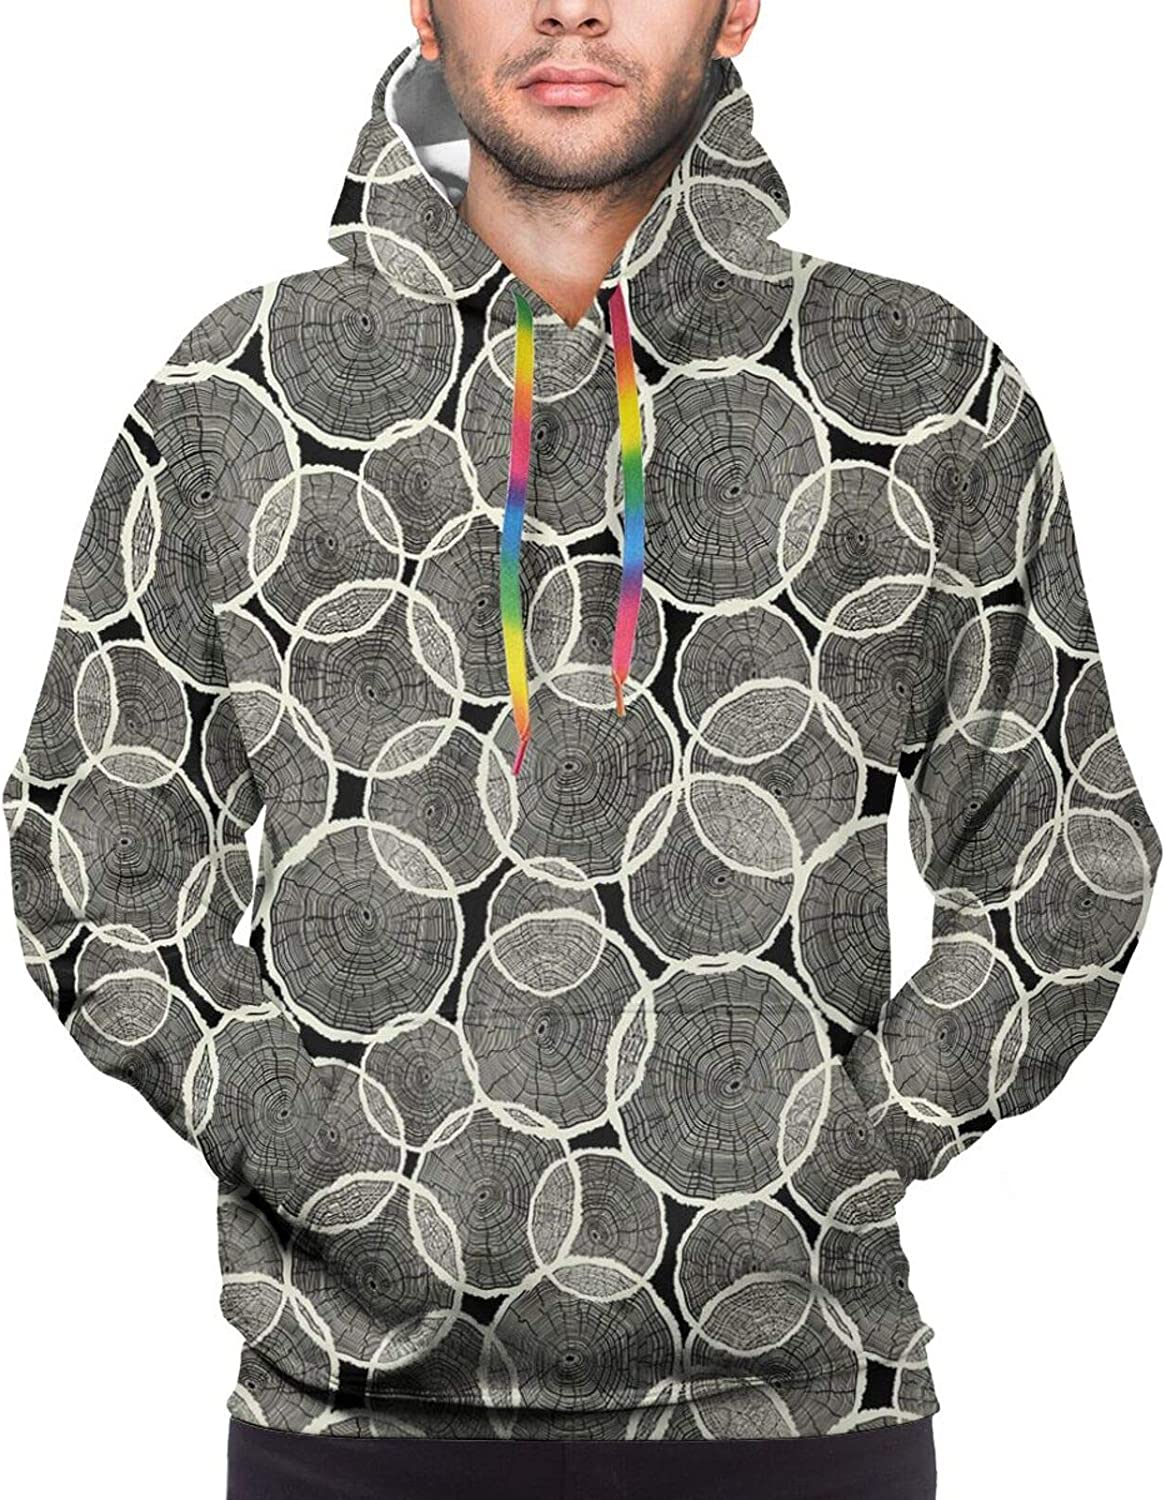 TENJONE Men's Hoodies Sweatshirts,Abstract Monochrome Composition with Flowers and Foliage Leaves Pattern